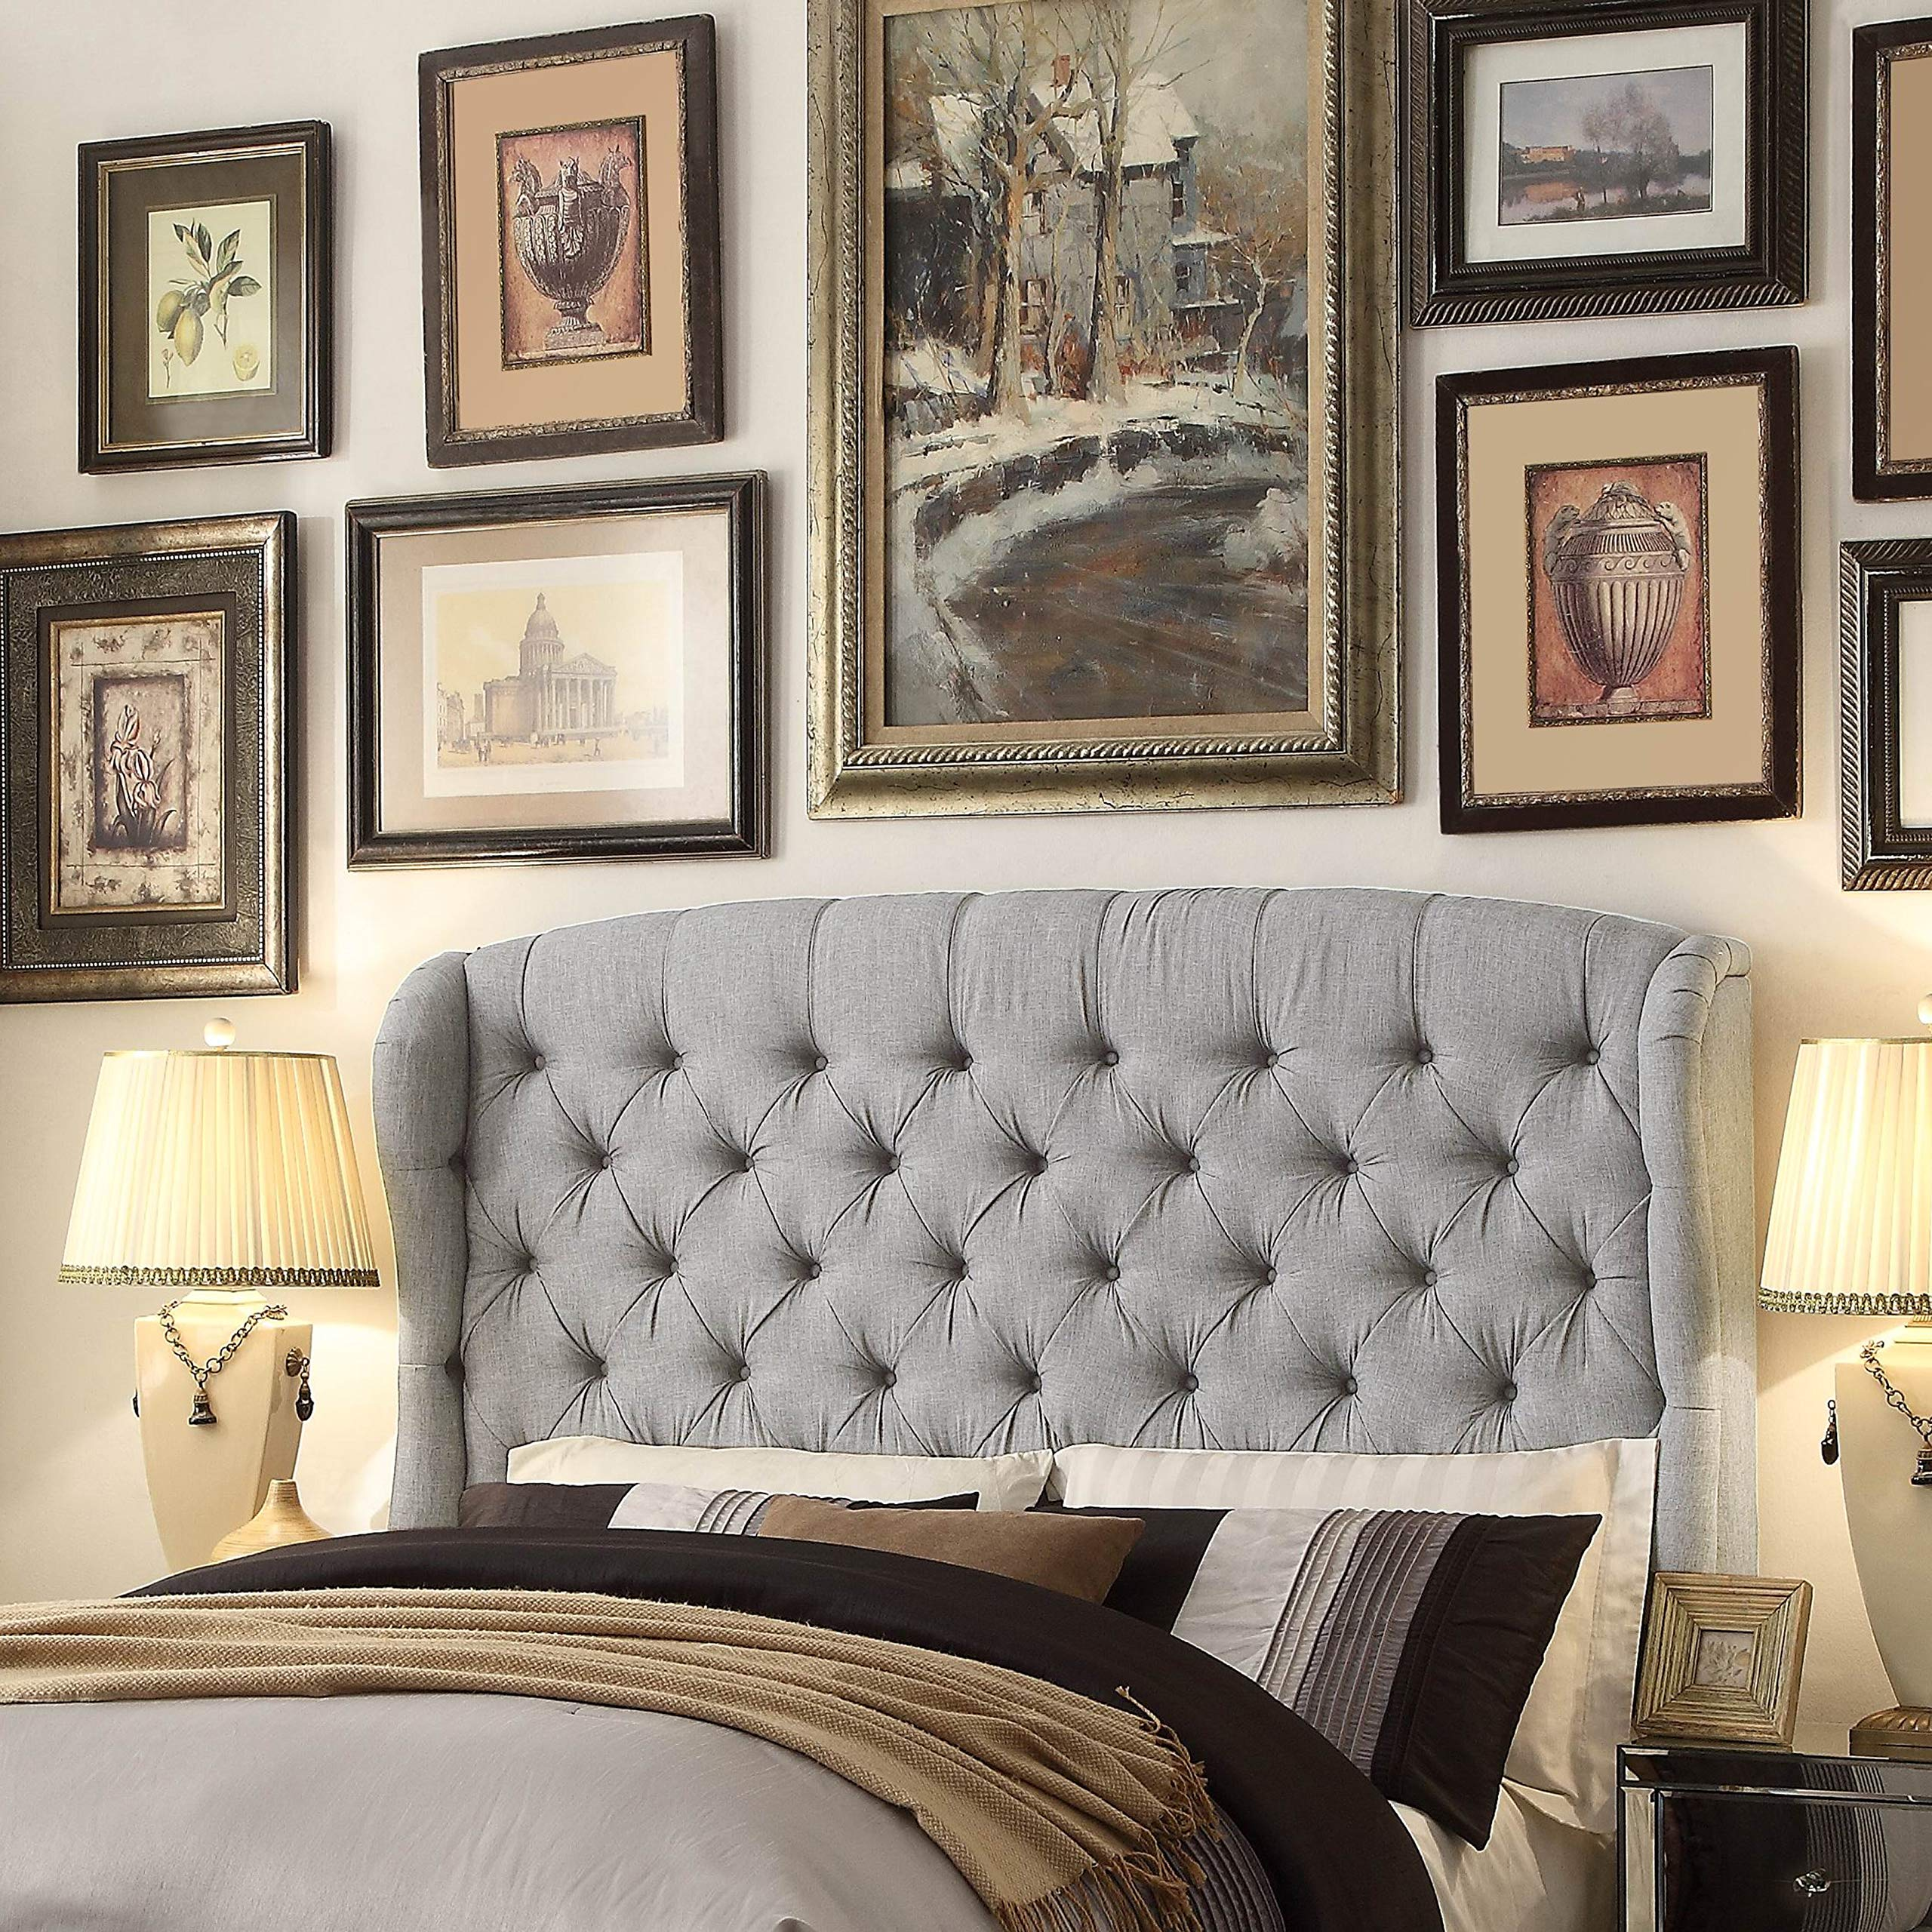 Moser Bay Furniture Feliciti Grey Tufted with Wings Queen Upholstery Headboard Transitional Fabric Textured Includes Hardware Wingback by Unknown